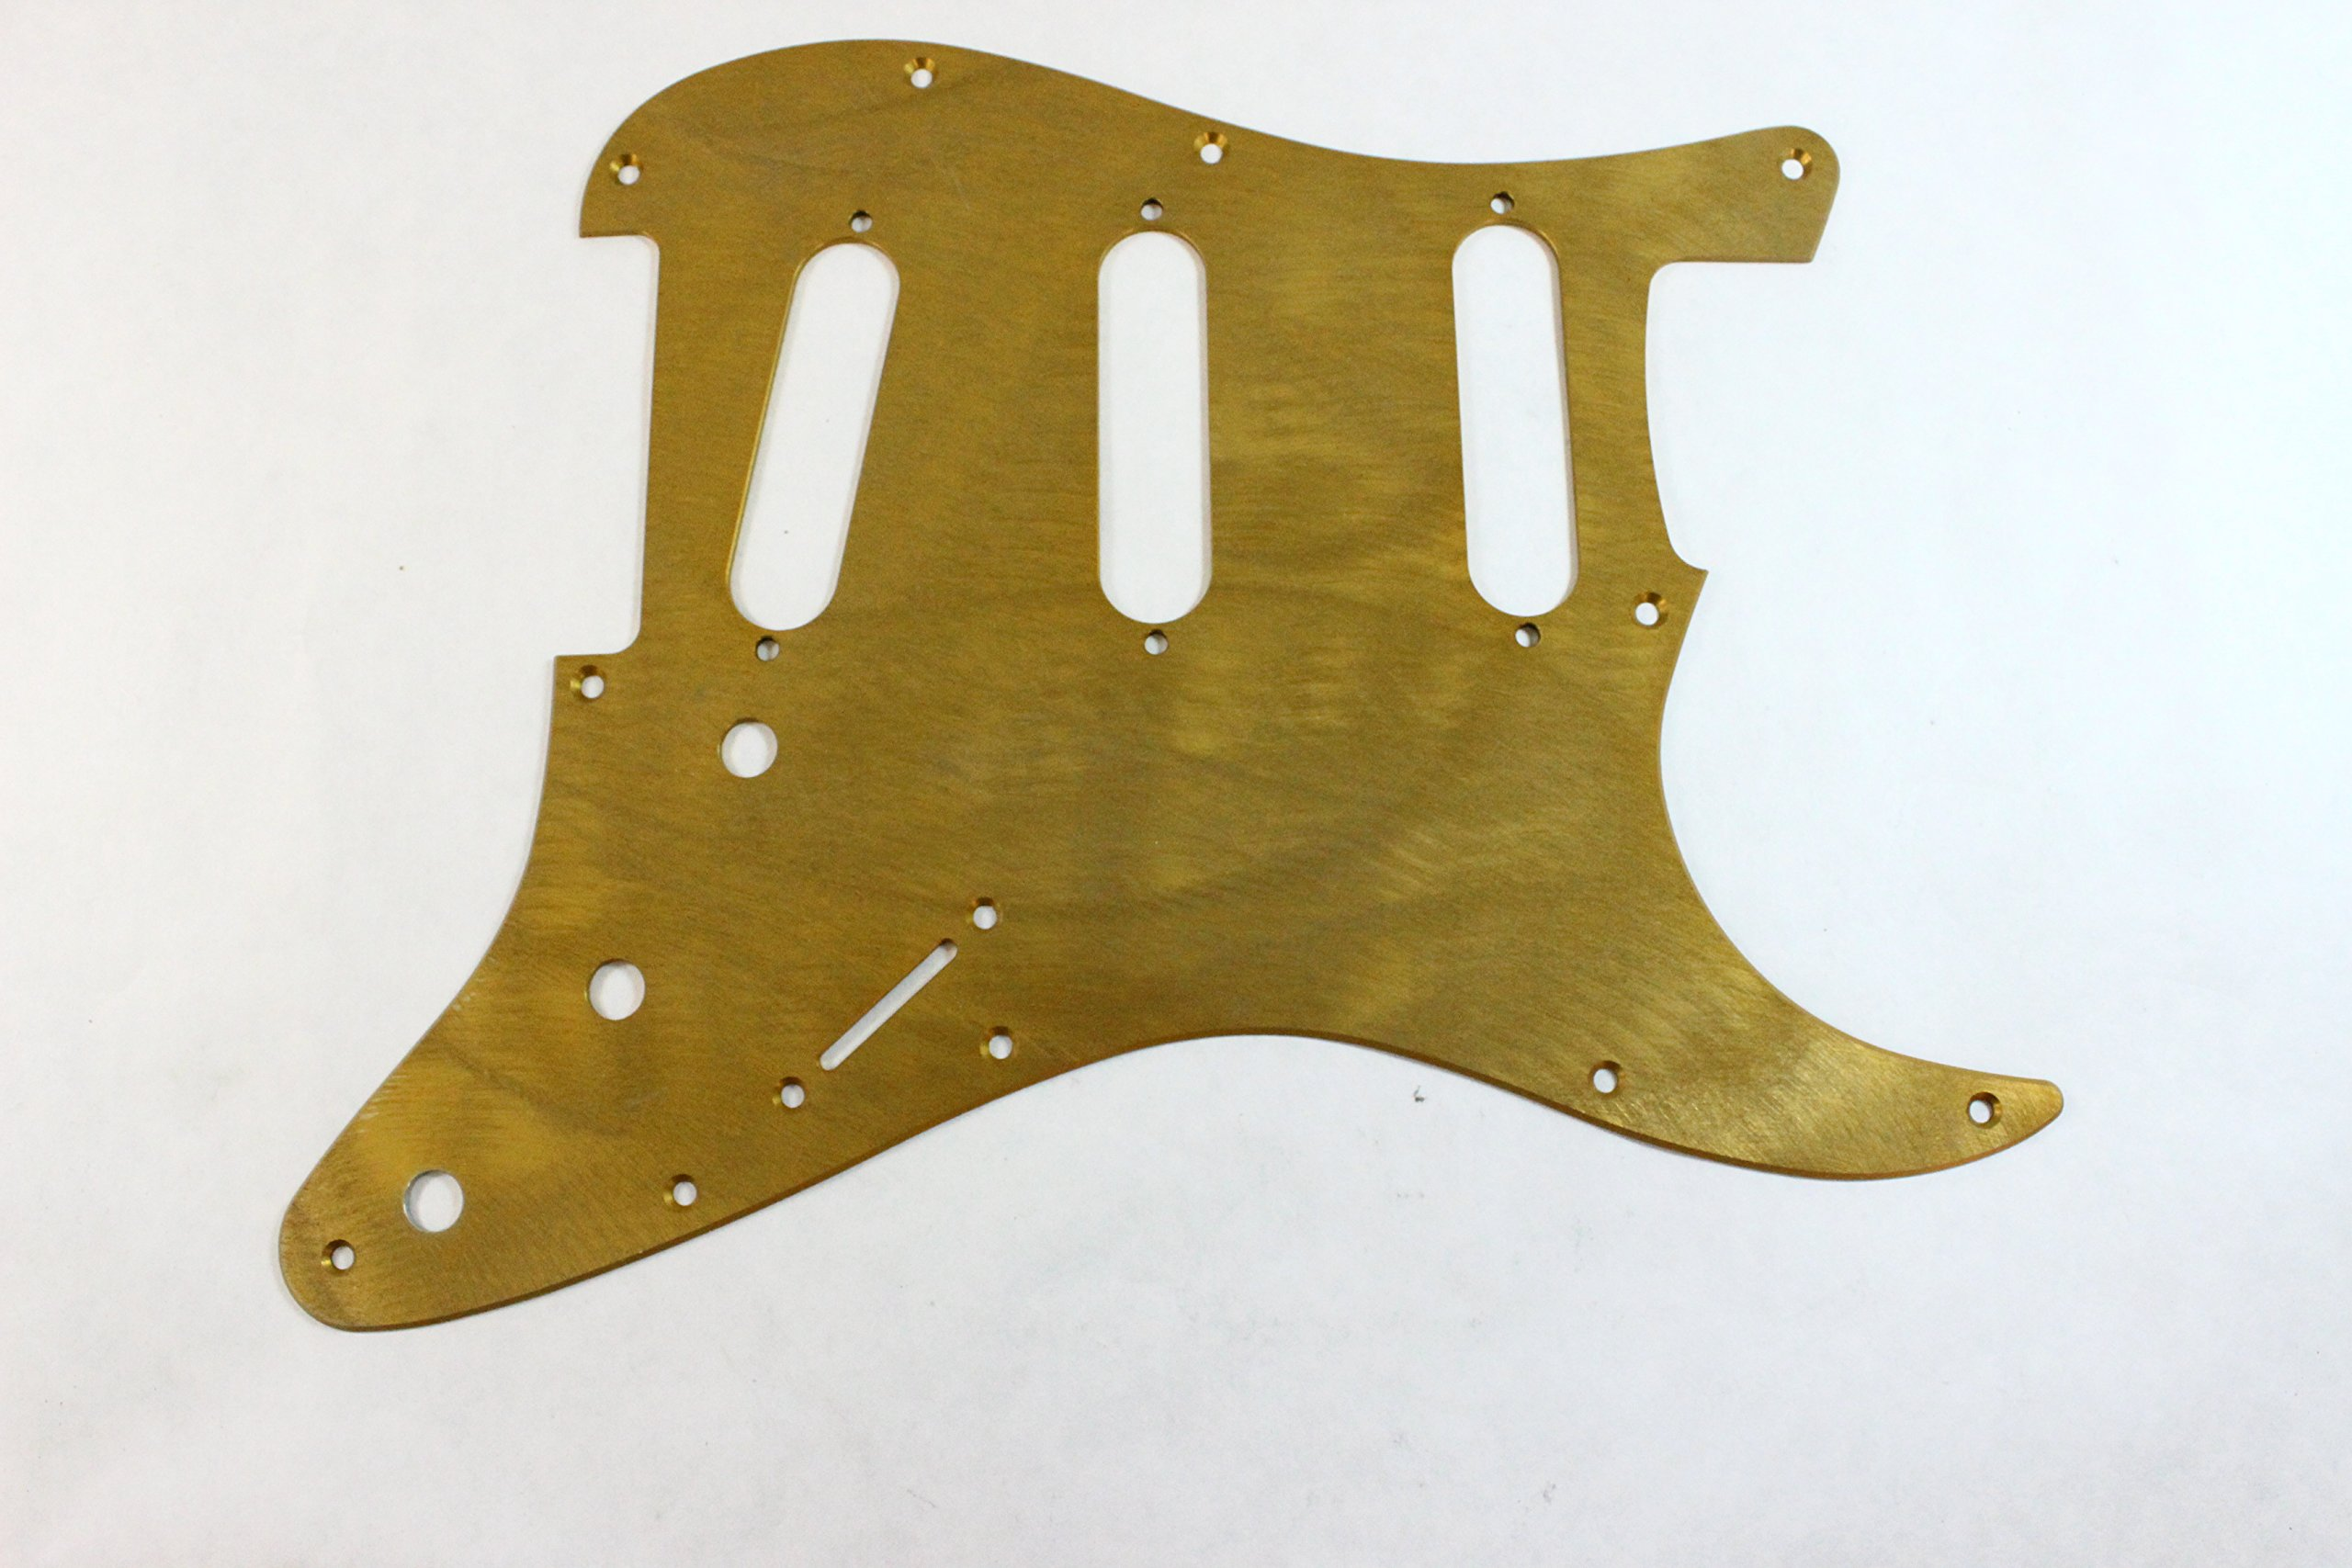 KAISH 11 Hole ST Strat SSS Metal Guitar Pickguard Aluminum Scrach Plate for USA//Mexican Fender Stratocaster Silver